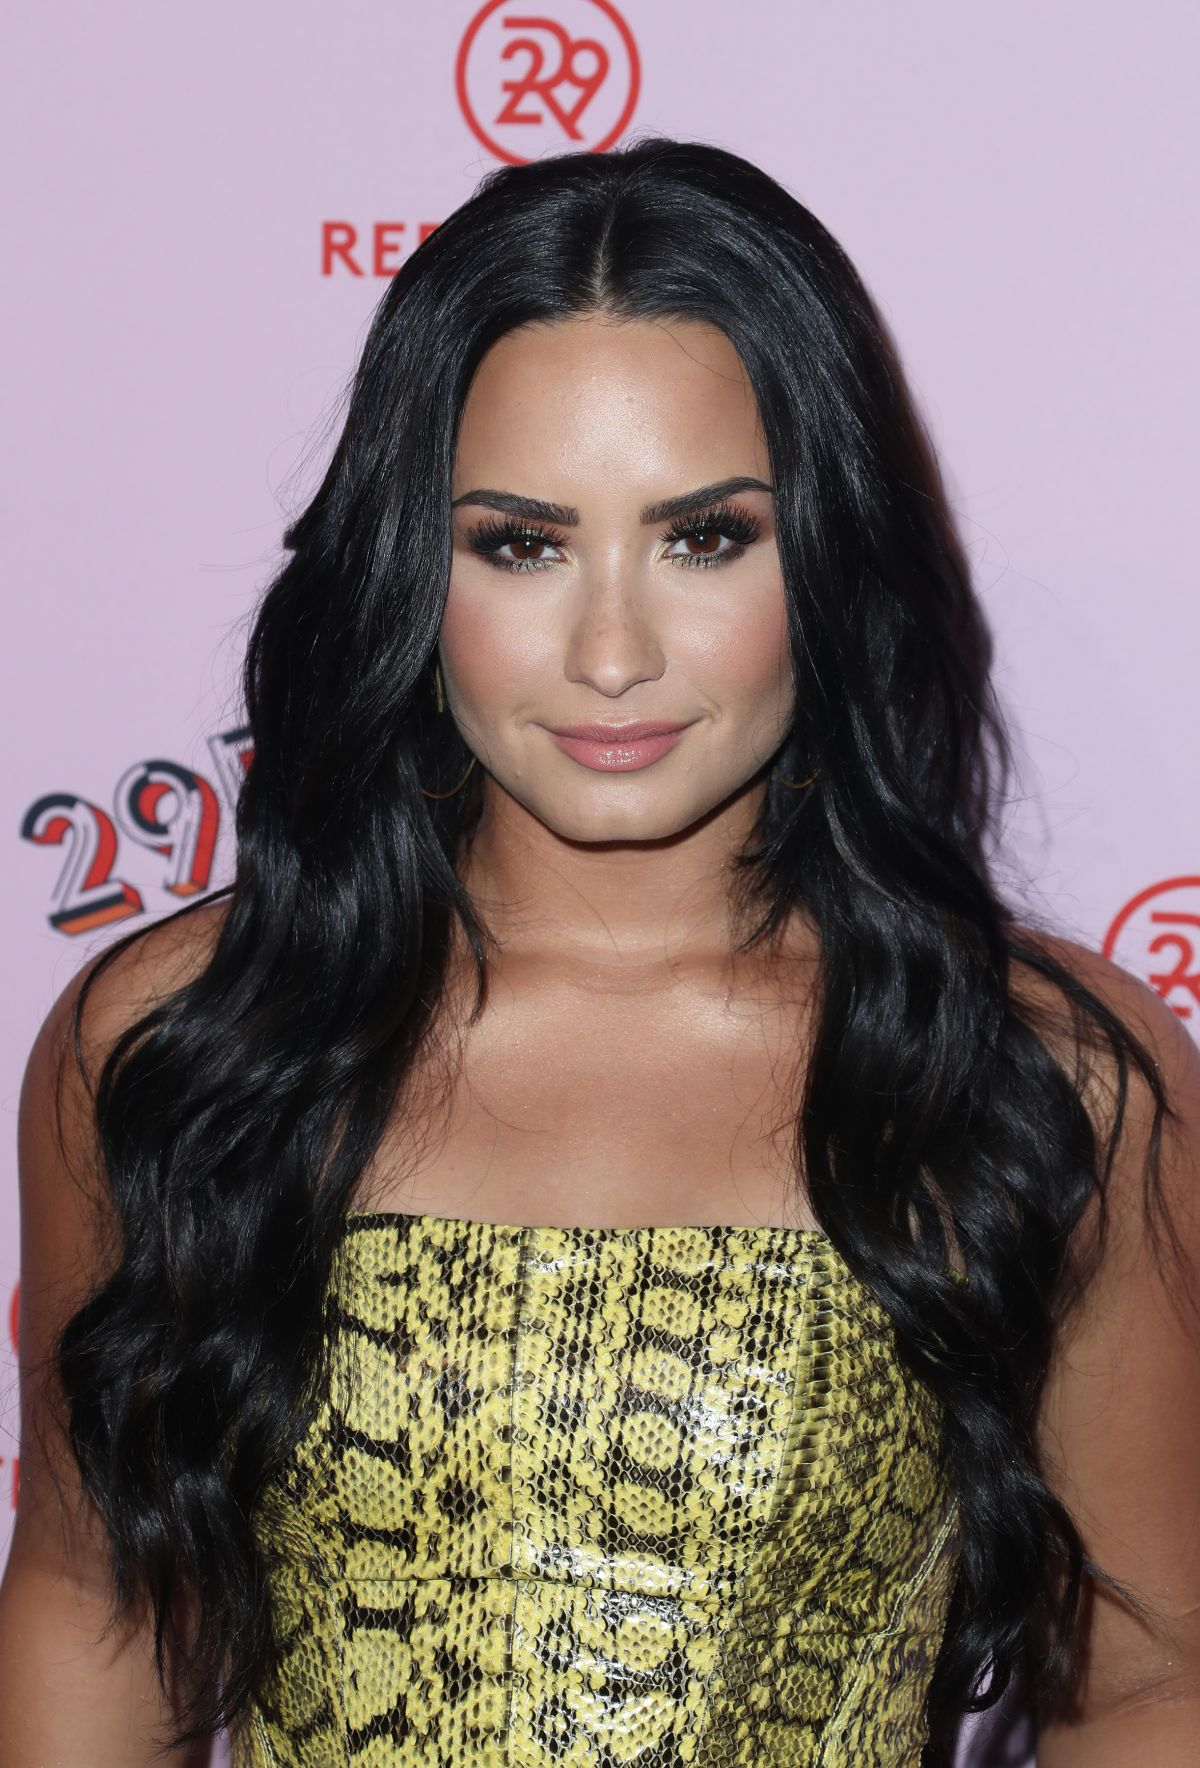 Demi Lovato Wikipedia on Demi Lovato   Disney Wiki